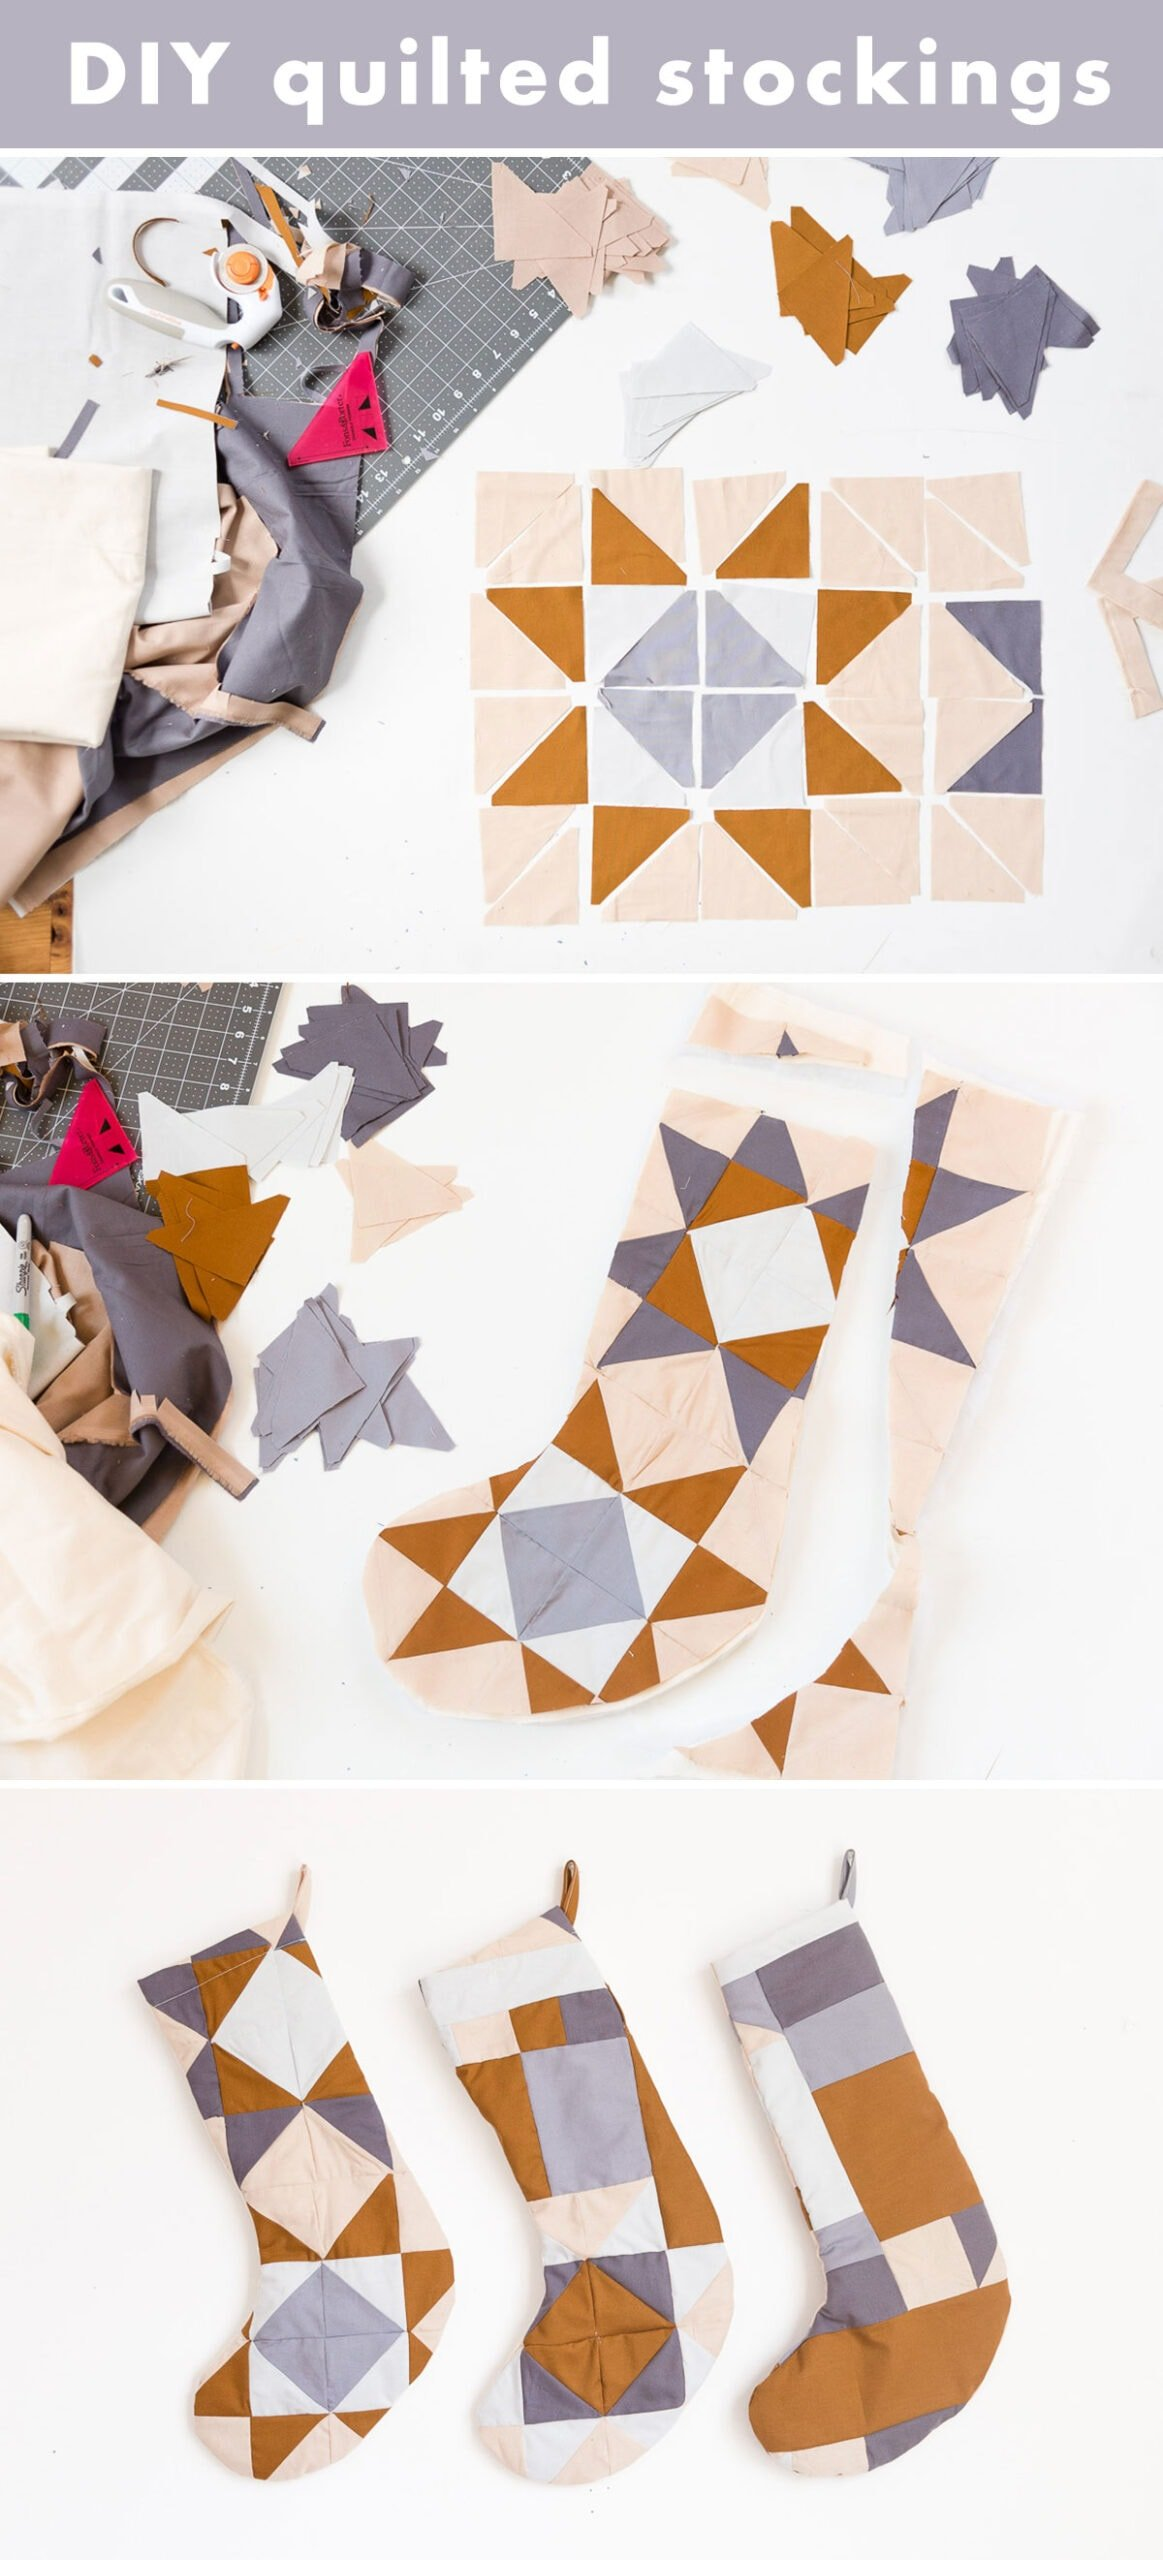 Step by step photos that show how to make a quilted Christmas stocking.